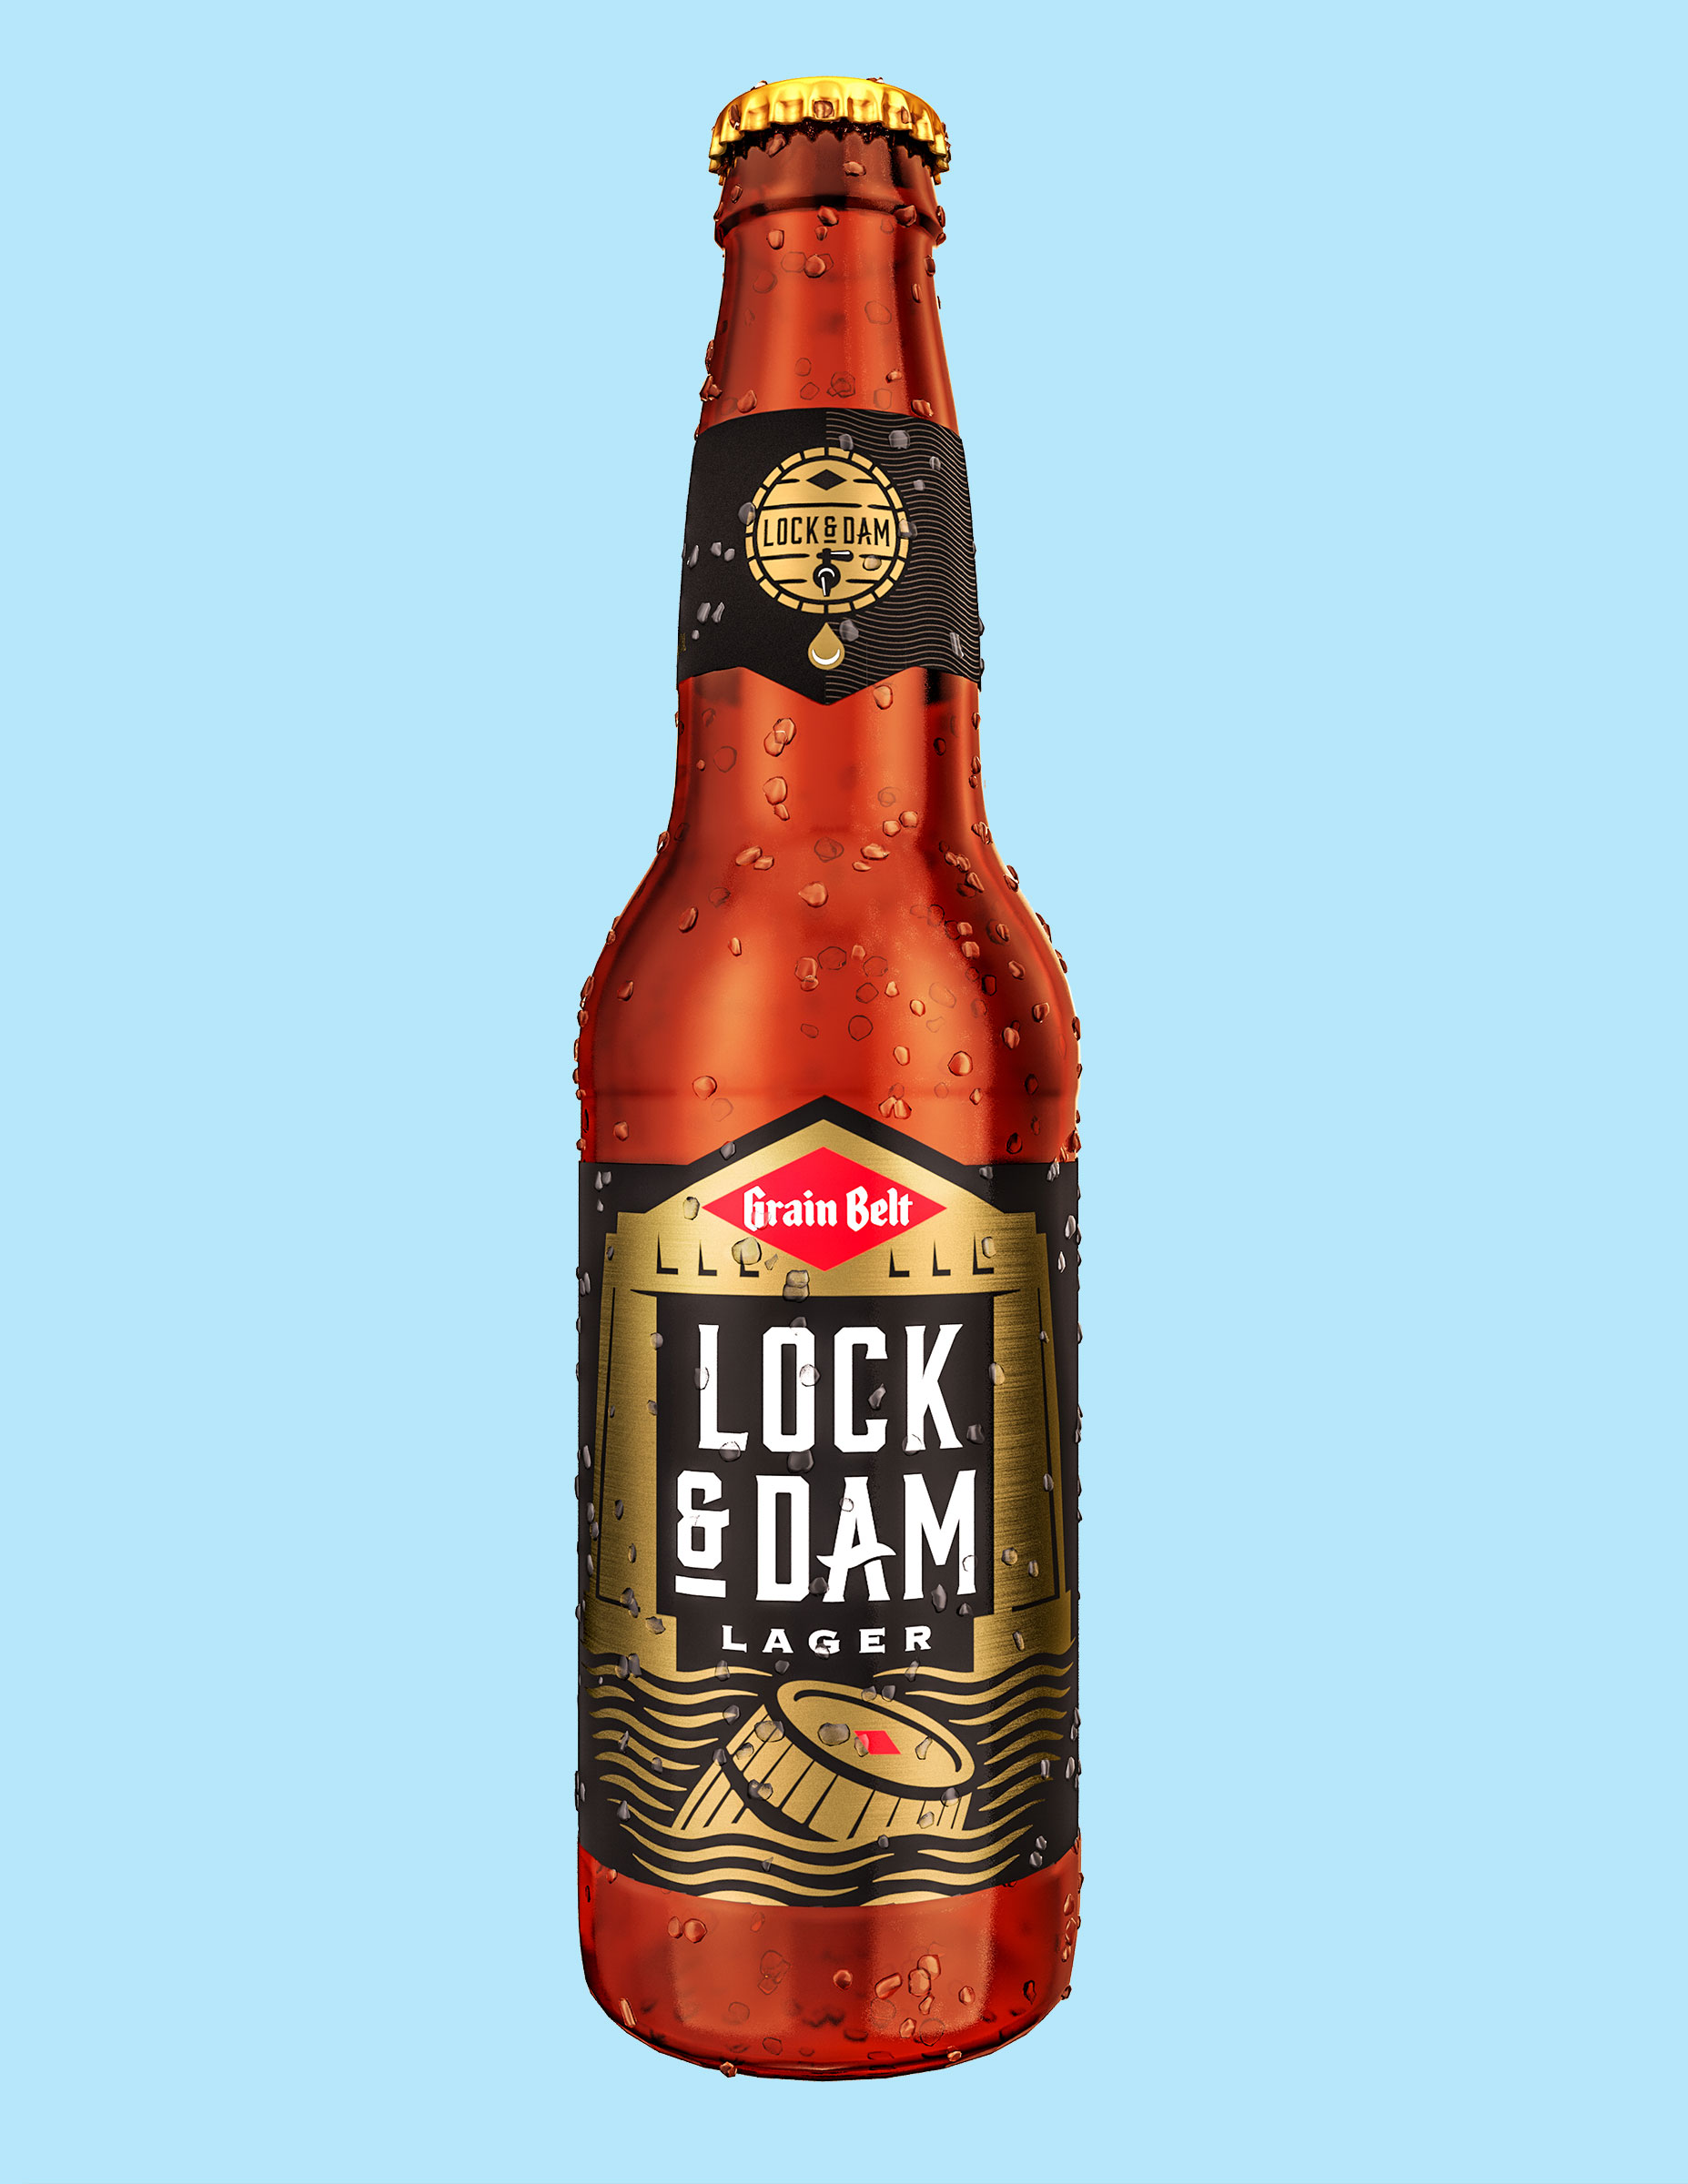 Grain Belt Lock & Dam Lager